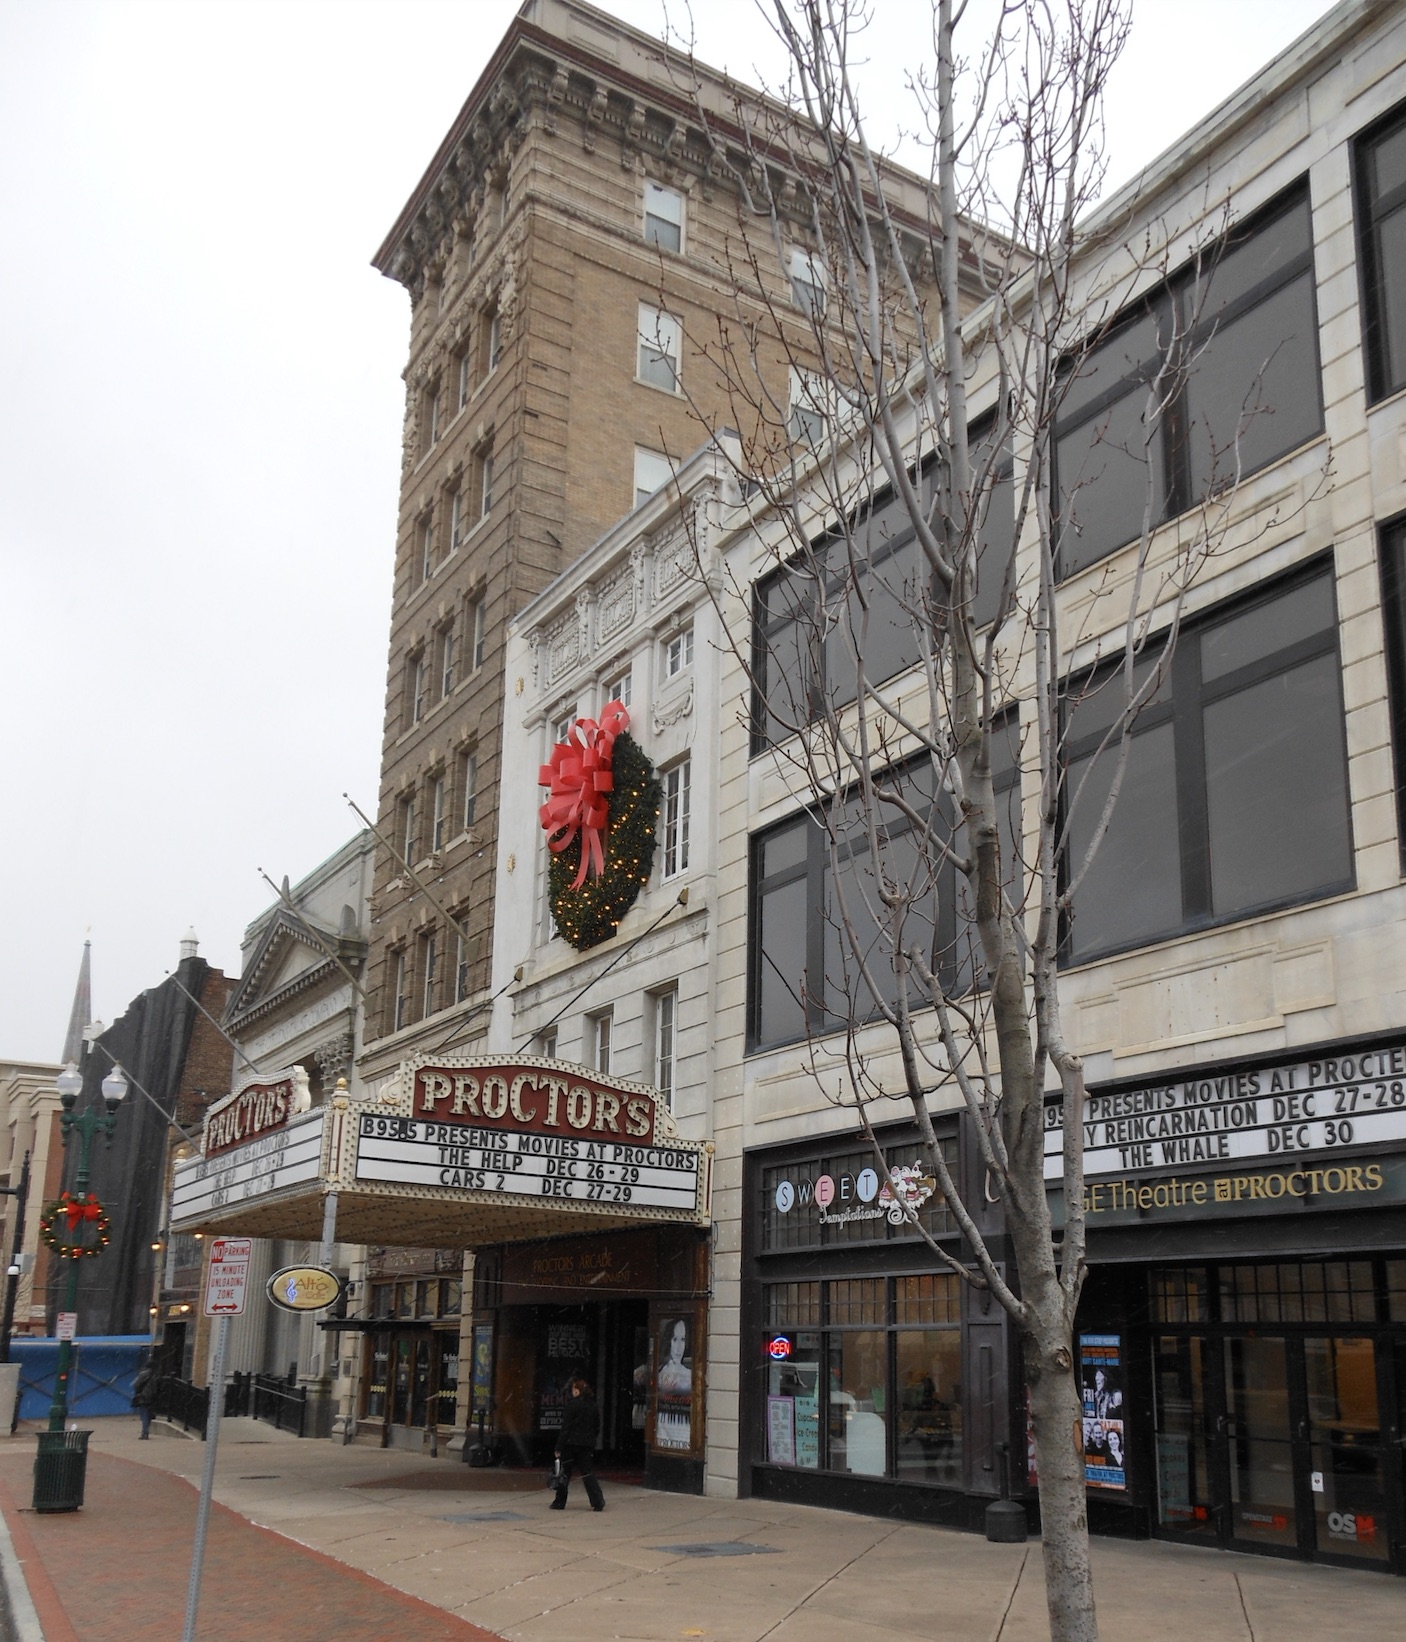 Proctors dressed for the Holidays